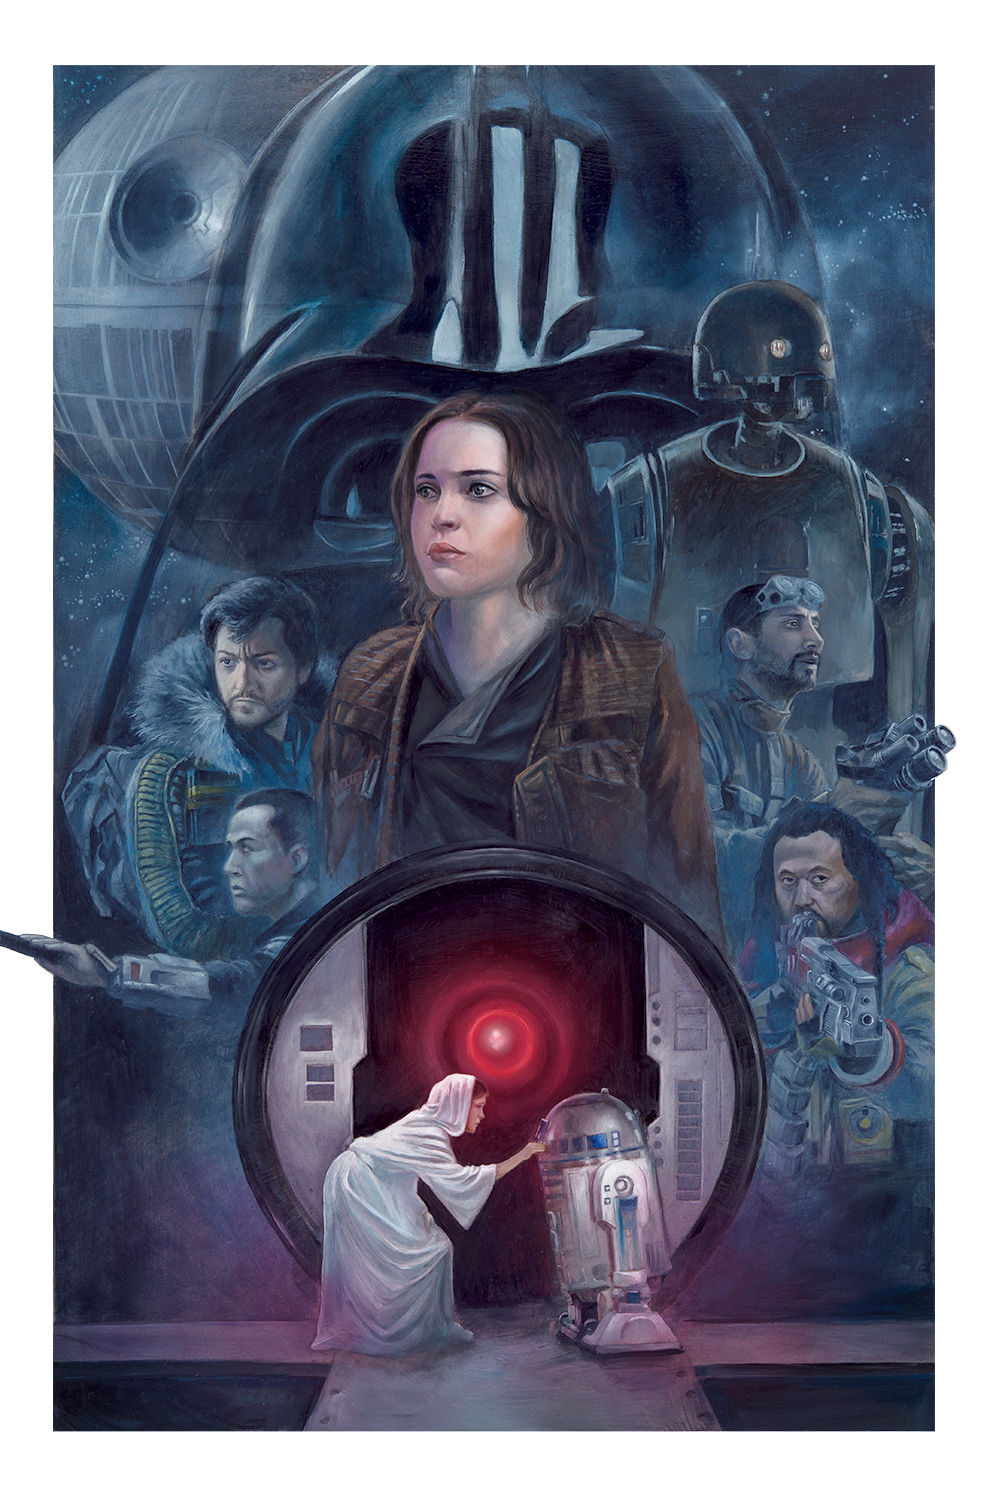 Built On Hope Rogue One Star Wars Celebration by Lee Kohse